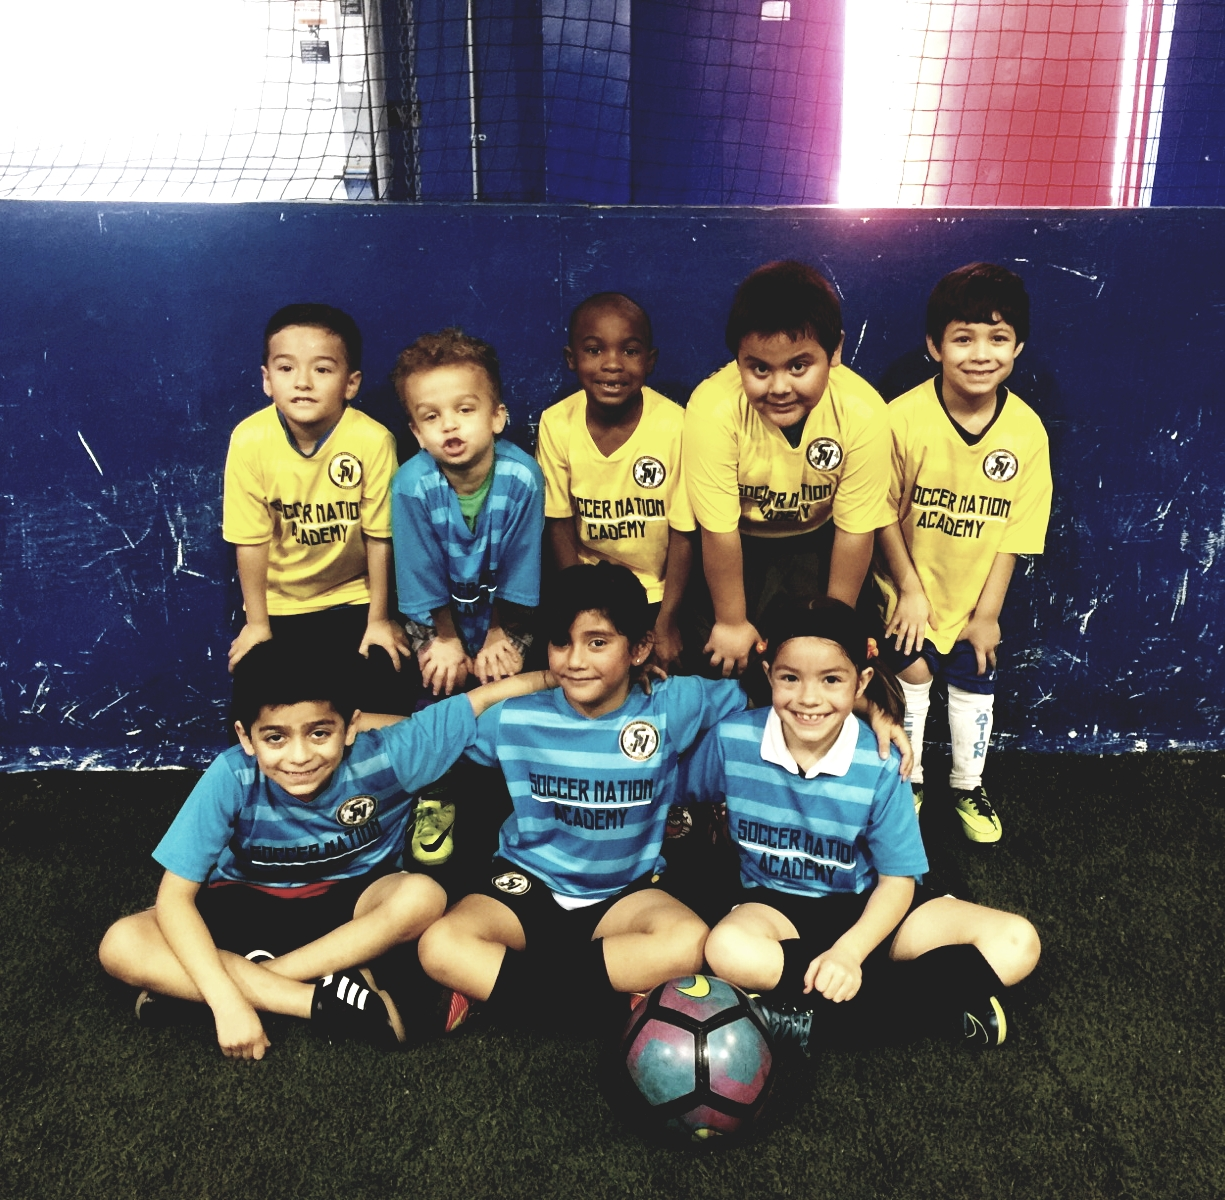 MINI CHAMPS - Soccer classes for kids from 4 to 8 years old